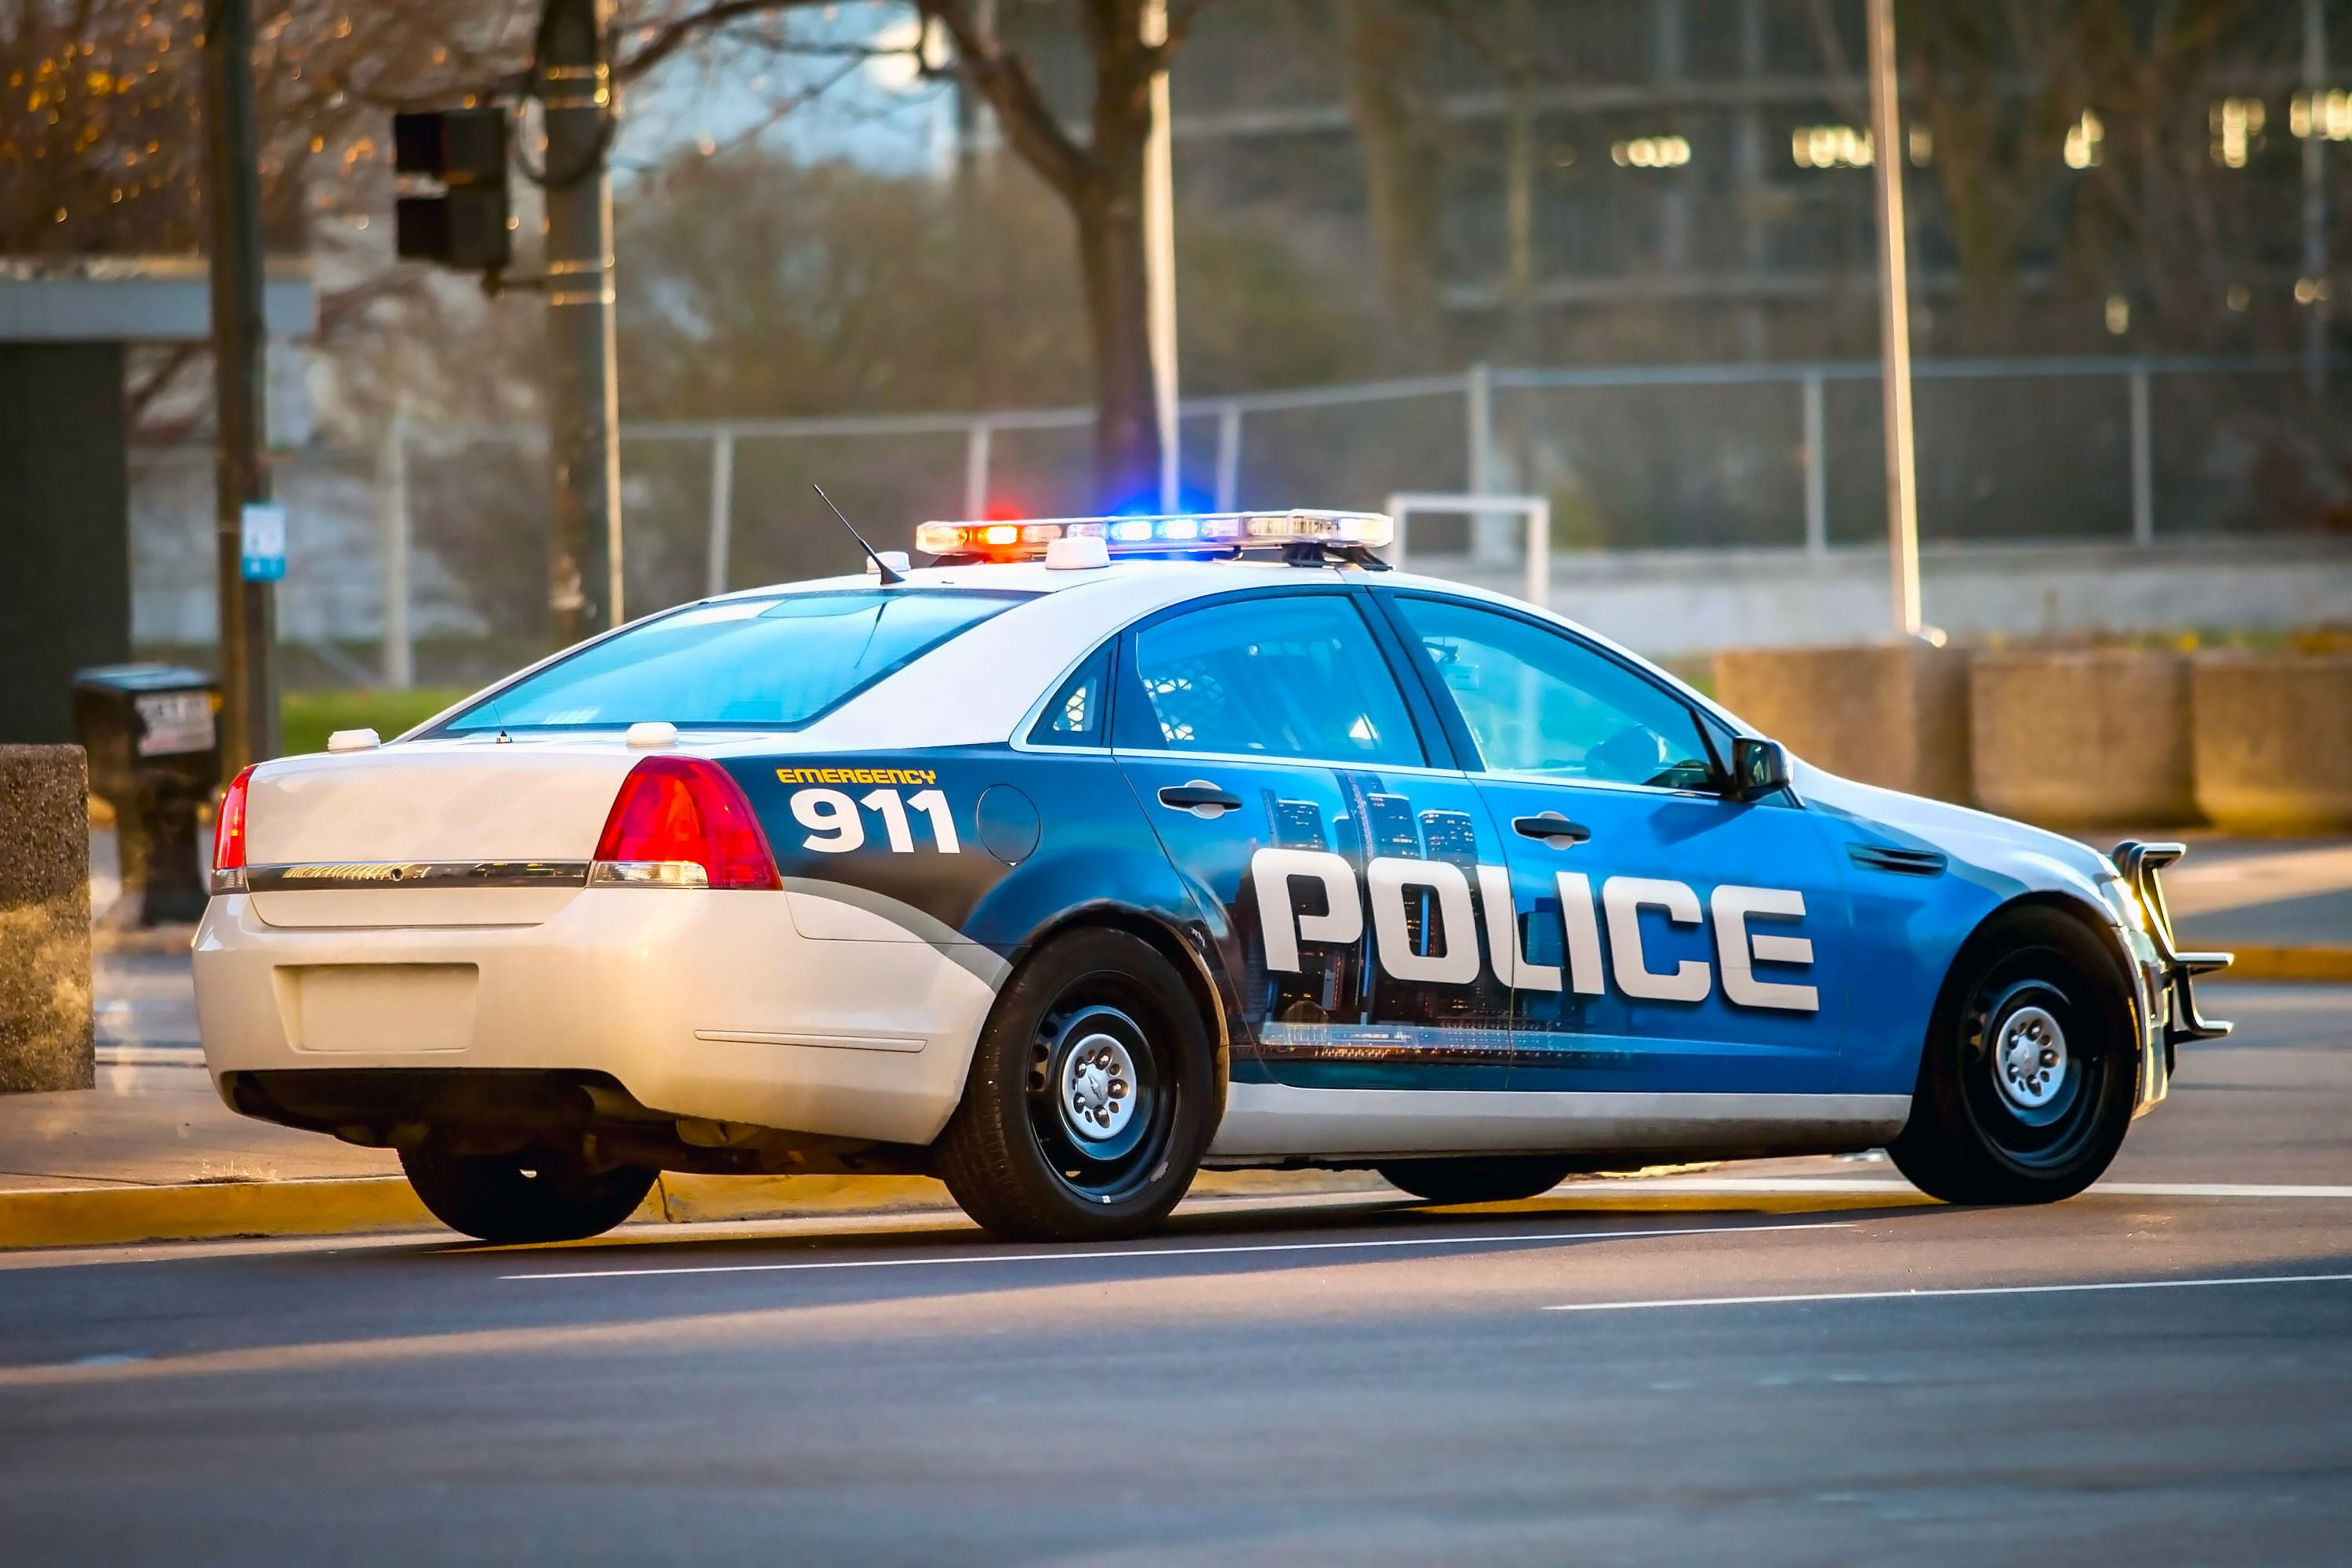 Police vehicle driving down a road. | Source: Shutterstock